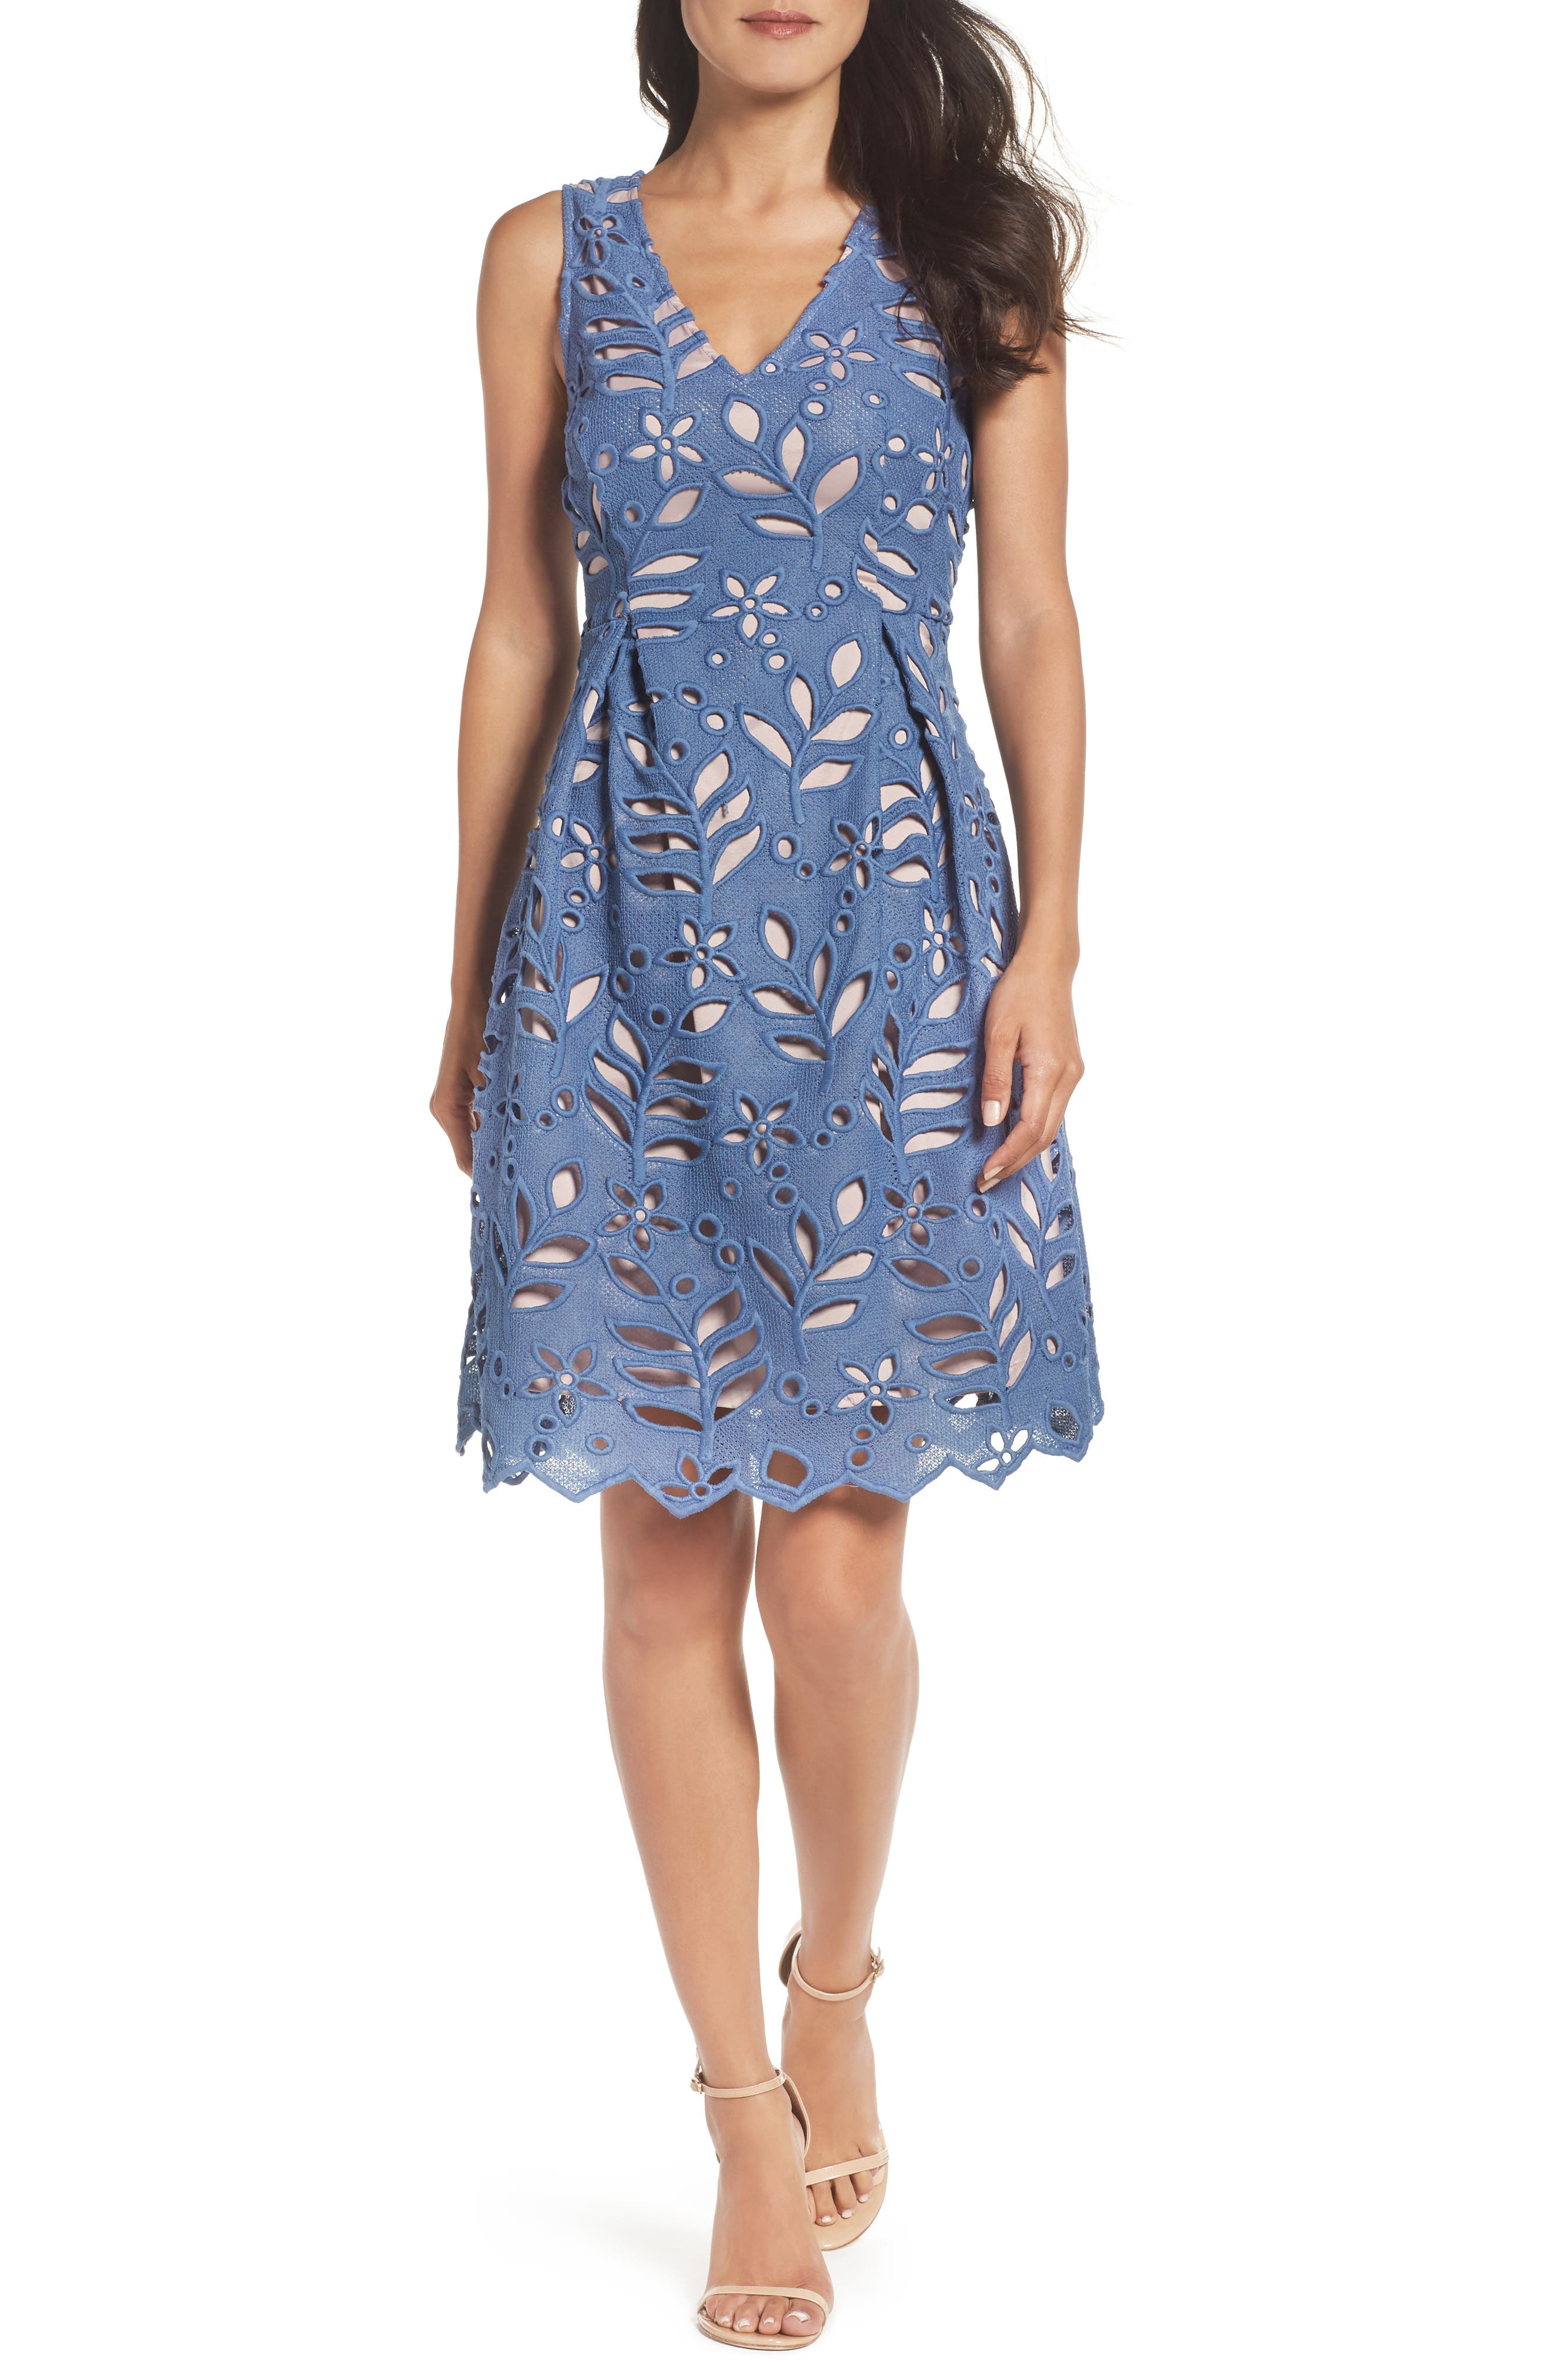 Alternate Image 1 Selected - Adrianna Papell Bella Lace Fit & Flare Dress